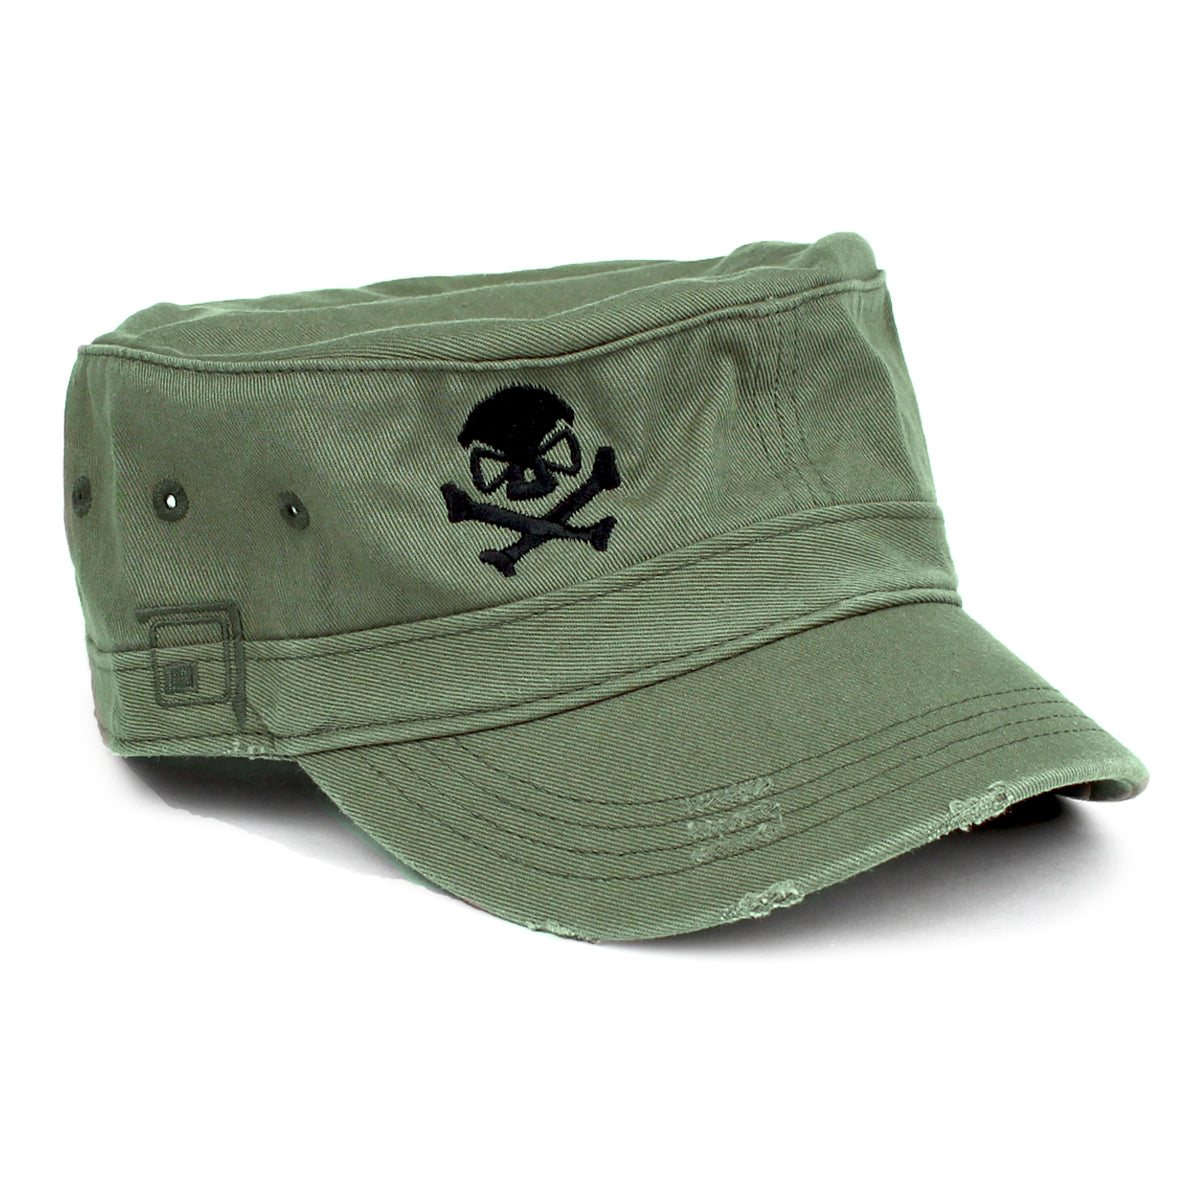 Cadet Cap - Olive/Black - Hats - Pipe Hitters Union